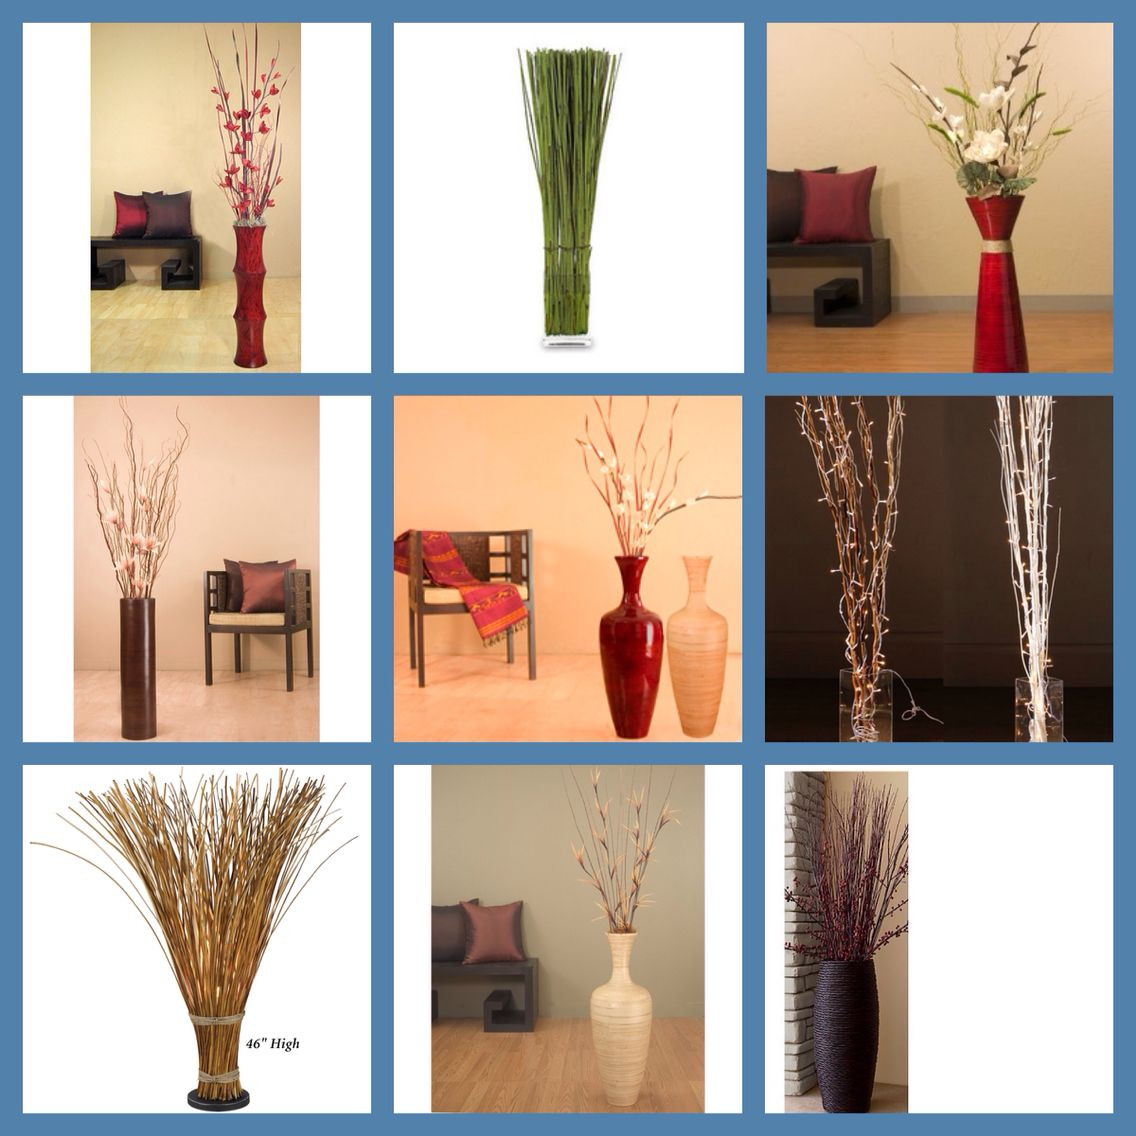 Rustic Wood Floor Vases Of Reeds Tall Flowers to Put In the Floor Vase Wish List Pertaining to Reeds Tall Flowers to Put In the Floor Vase the Floor Home Projects